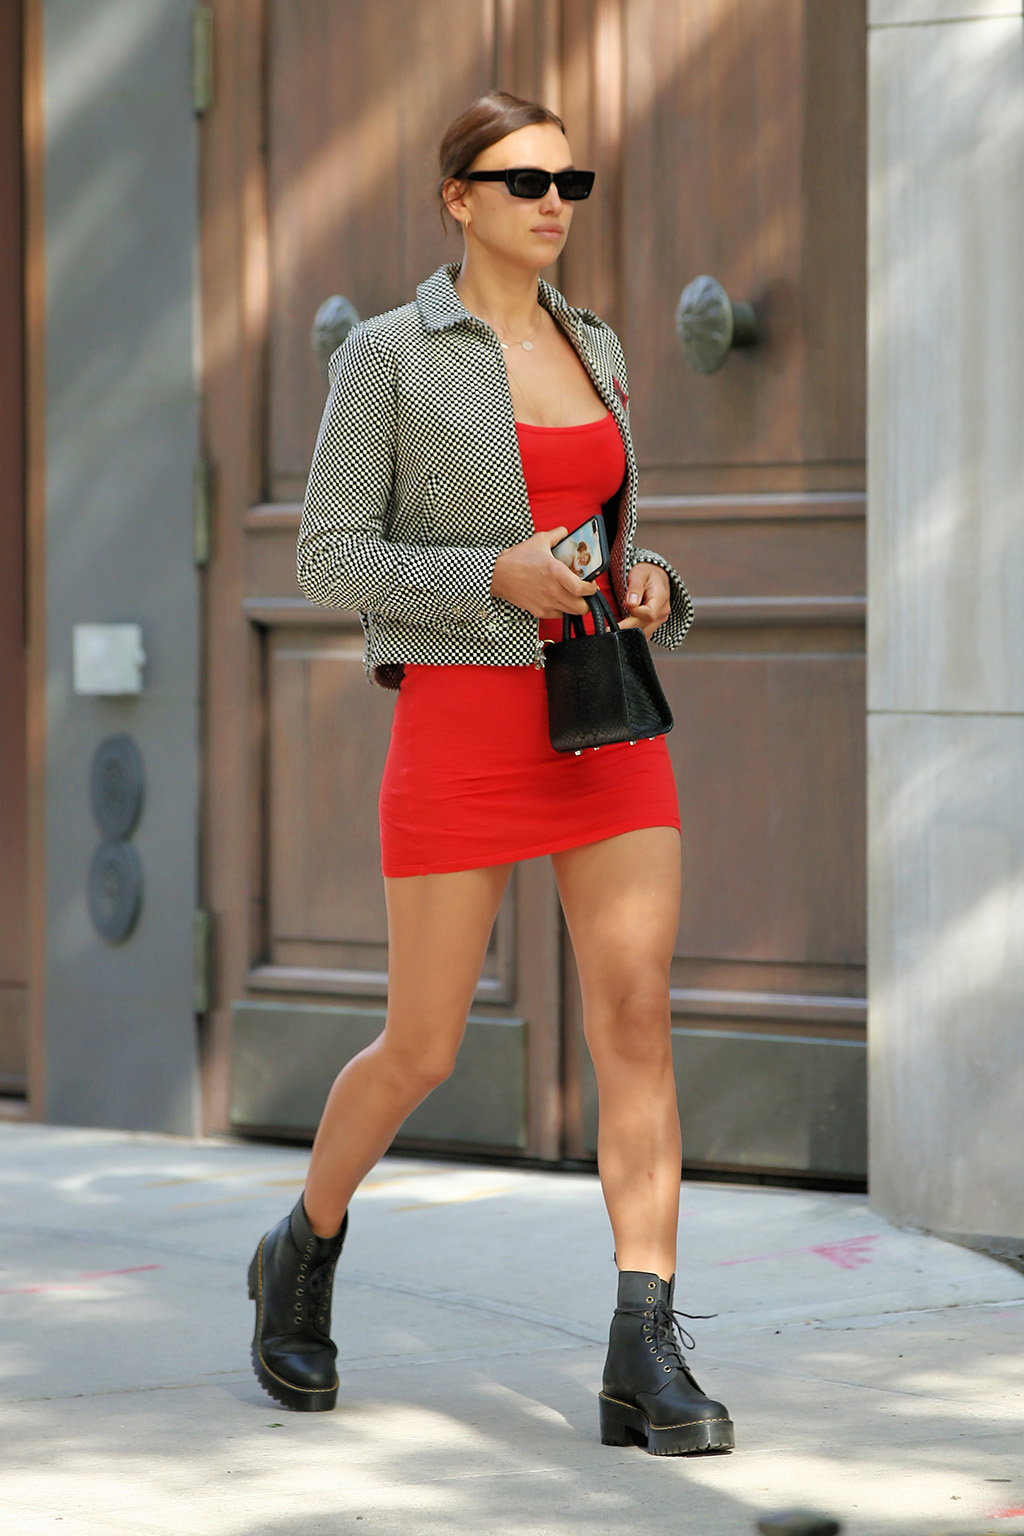 irina shayk, celebrity style, minidress, legs, dr martens boots, chrome hearts jacket, bradley cooper ex, Model Irina Shayk is seen in a short red dress, Chrome Hearts short-waisted jacket, lace-up boots and little hand bag in New York City on May 27, 2020.Pictured: Irina ShaykRef: SPL5168793 270520 NON-EXCLUSIVEPicture by: Christopher Peterson / SplashNews.comSplash News and PicturesUSA: +1 310-525-5808London: +44 (0)20 8126 1009Berlin: +49 175 3764 166photodesk@splashnews.comWorld Rights